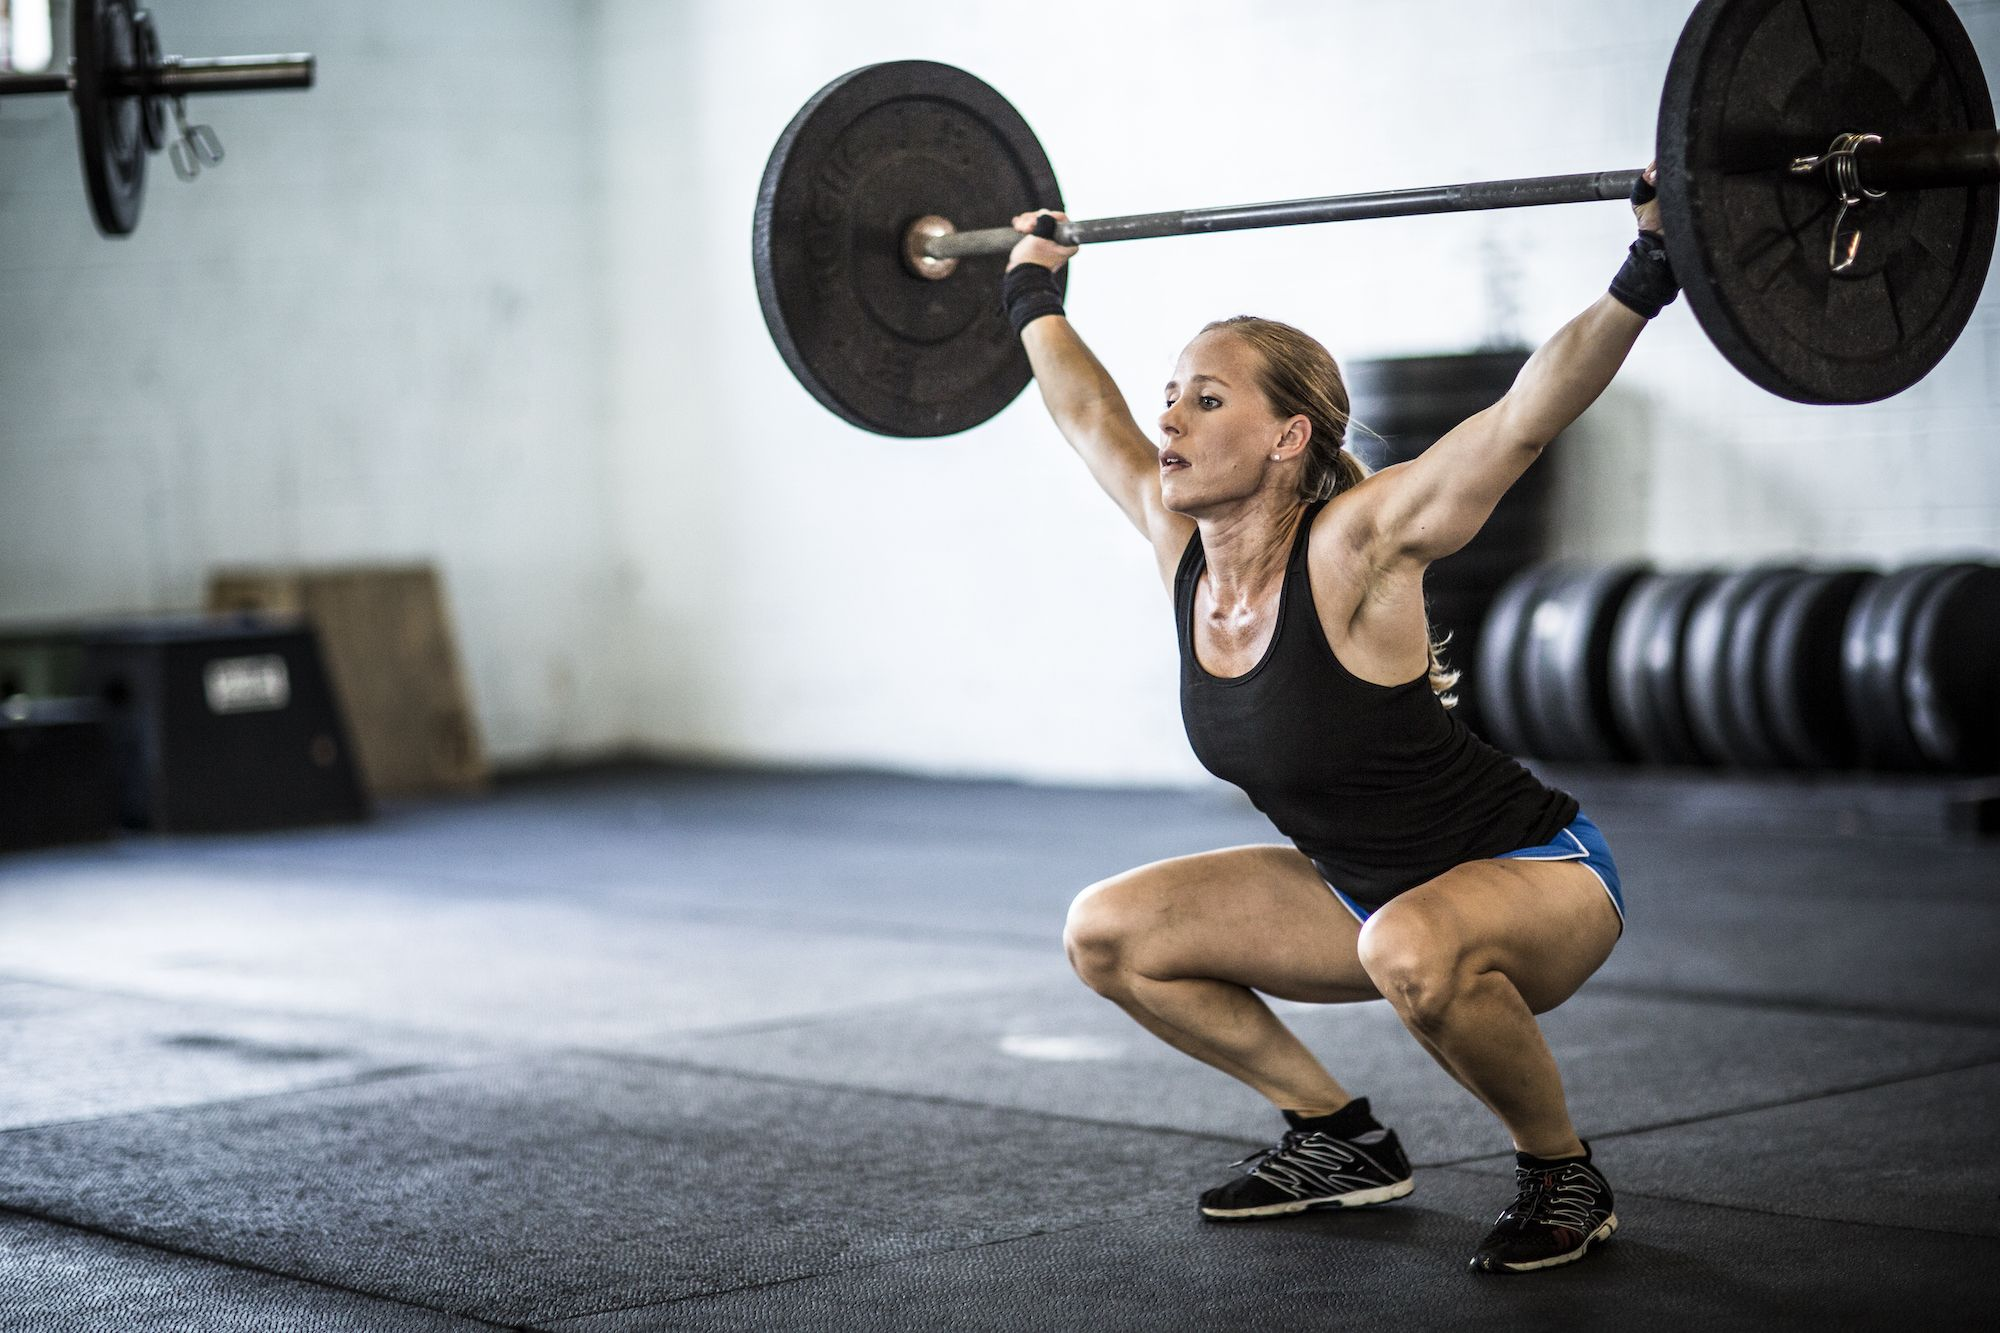 Lifting Weights May Help Prevent Obesity, New Study Confirms